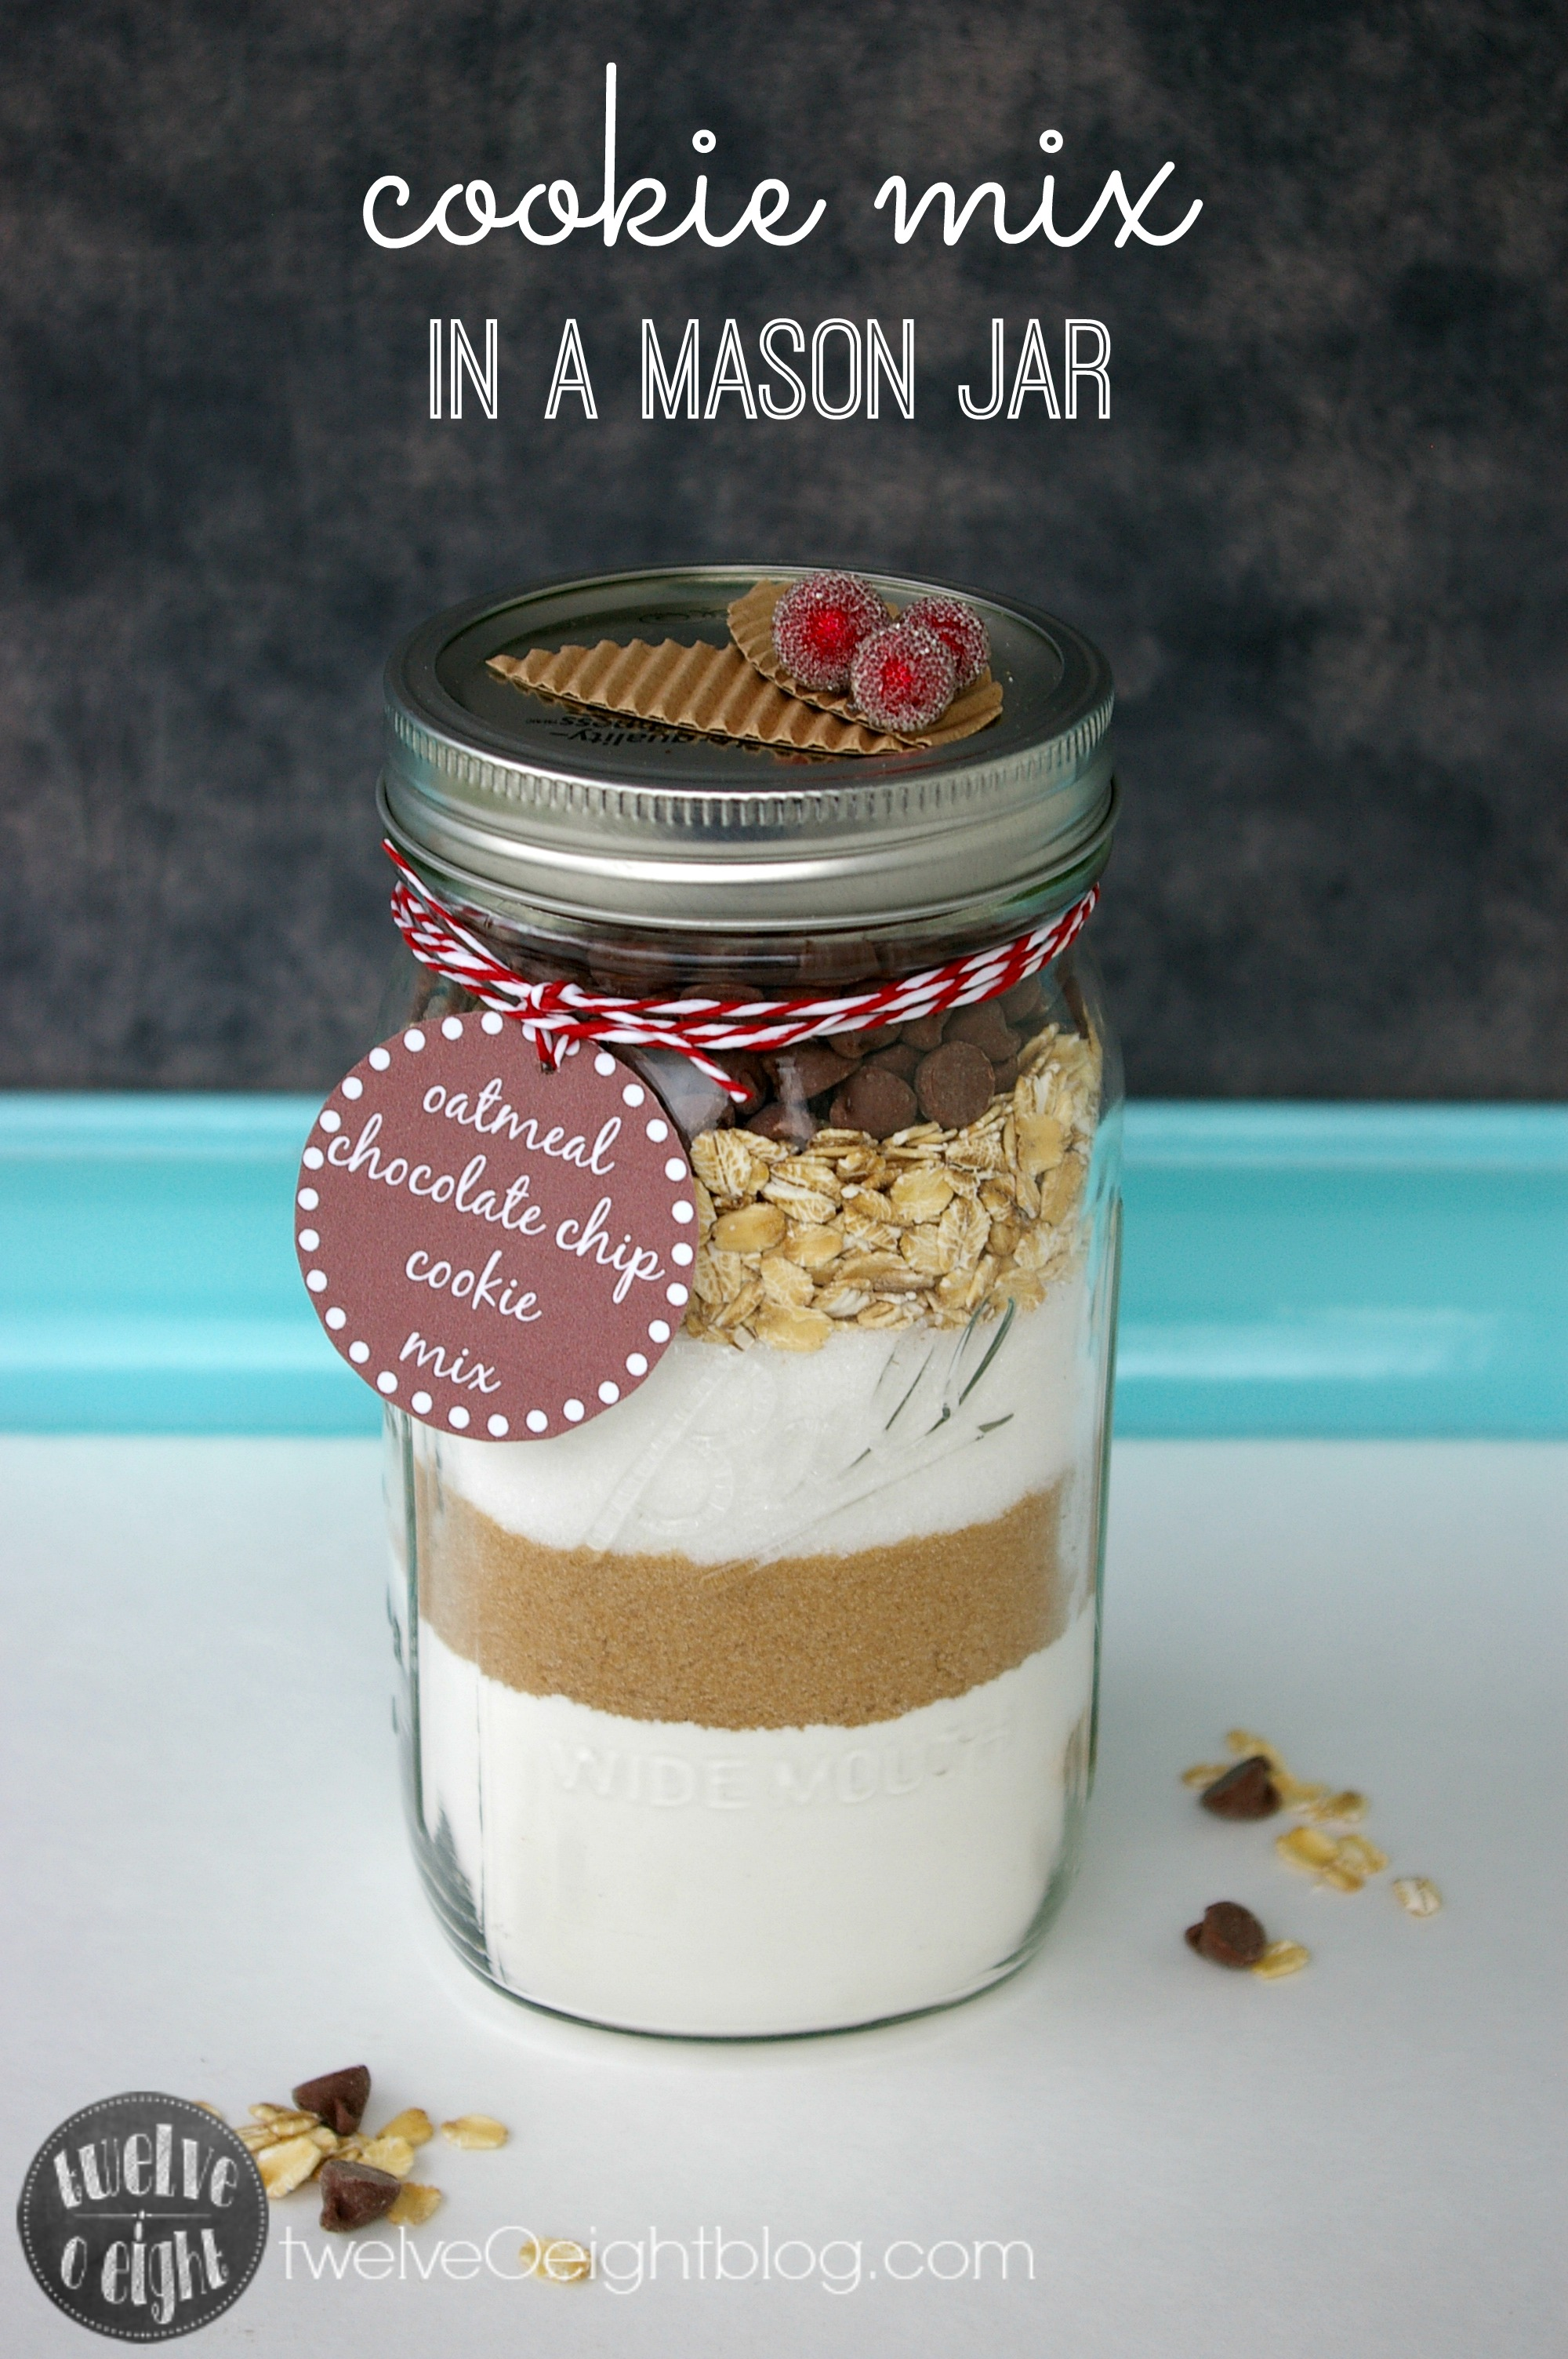 Gifts In A Mason Jar Oatmeal Chocolate Chip Cookie Mix Twelveoeight